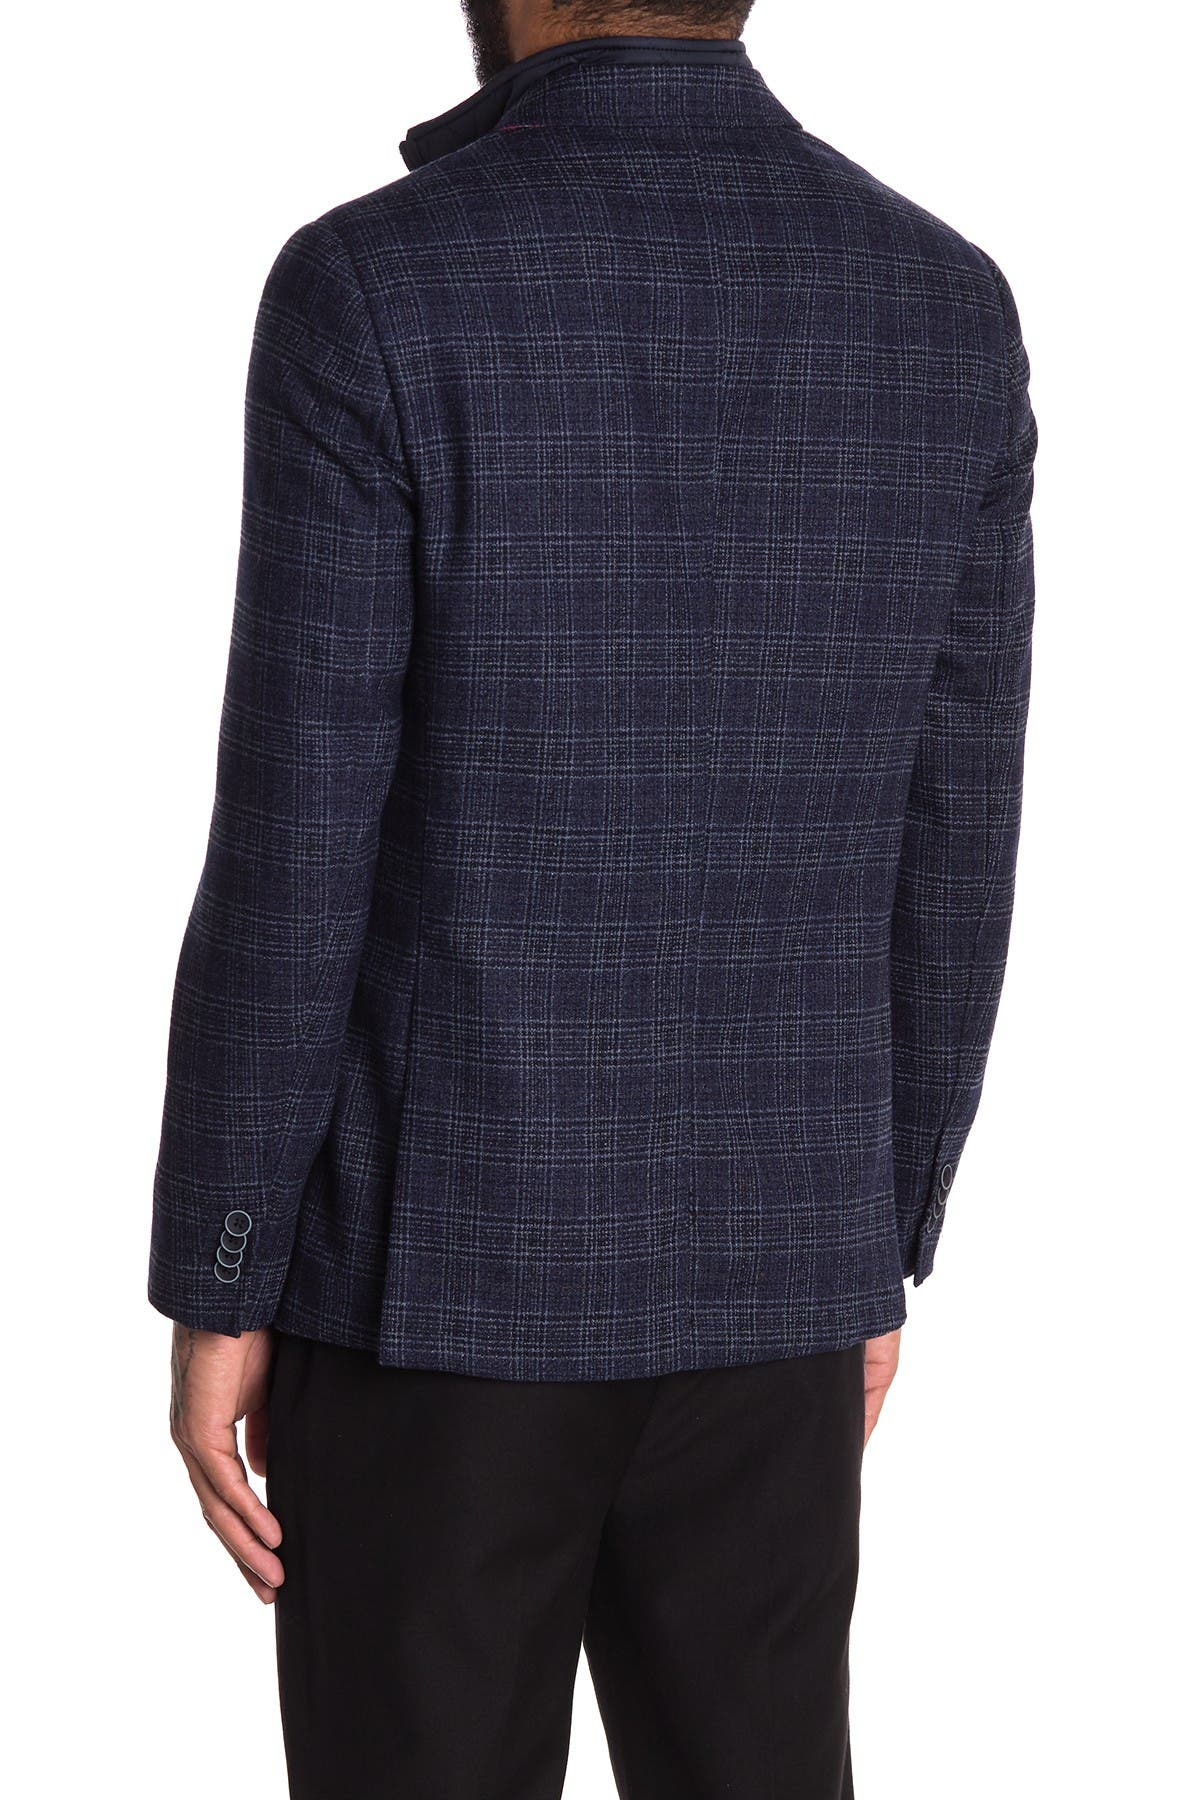 Image of SOUL OF LONDON Navy Plaid Two Button Jacket with Removable Dickey